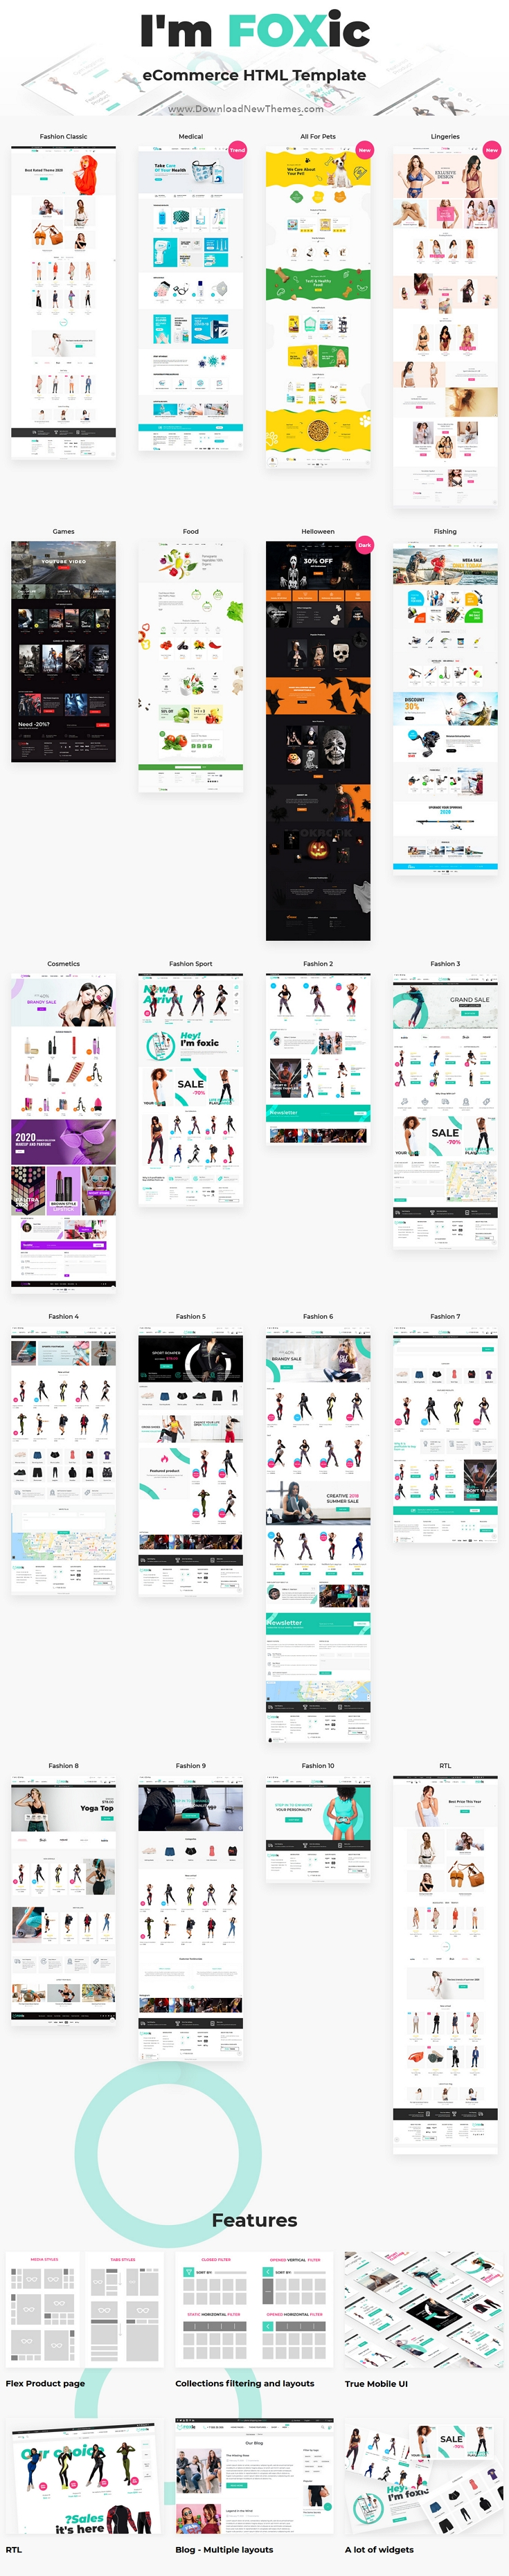 Multipurpose eCommerce Bootstrap Template